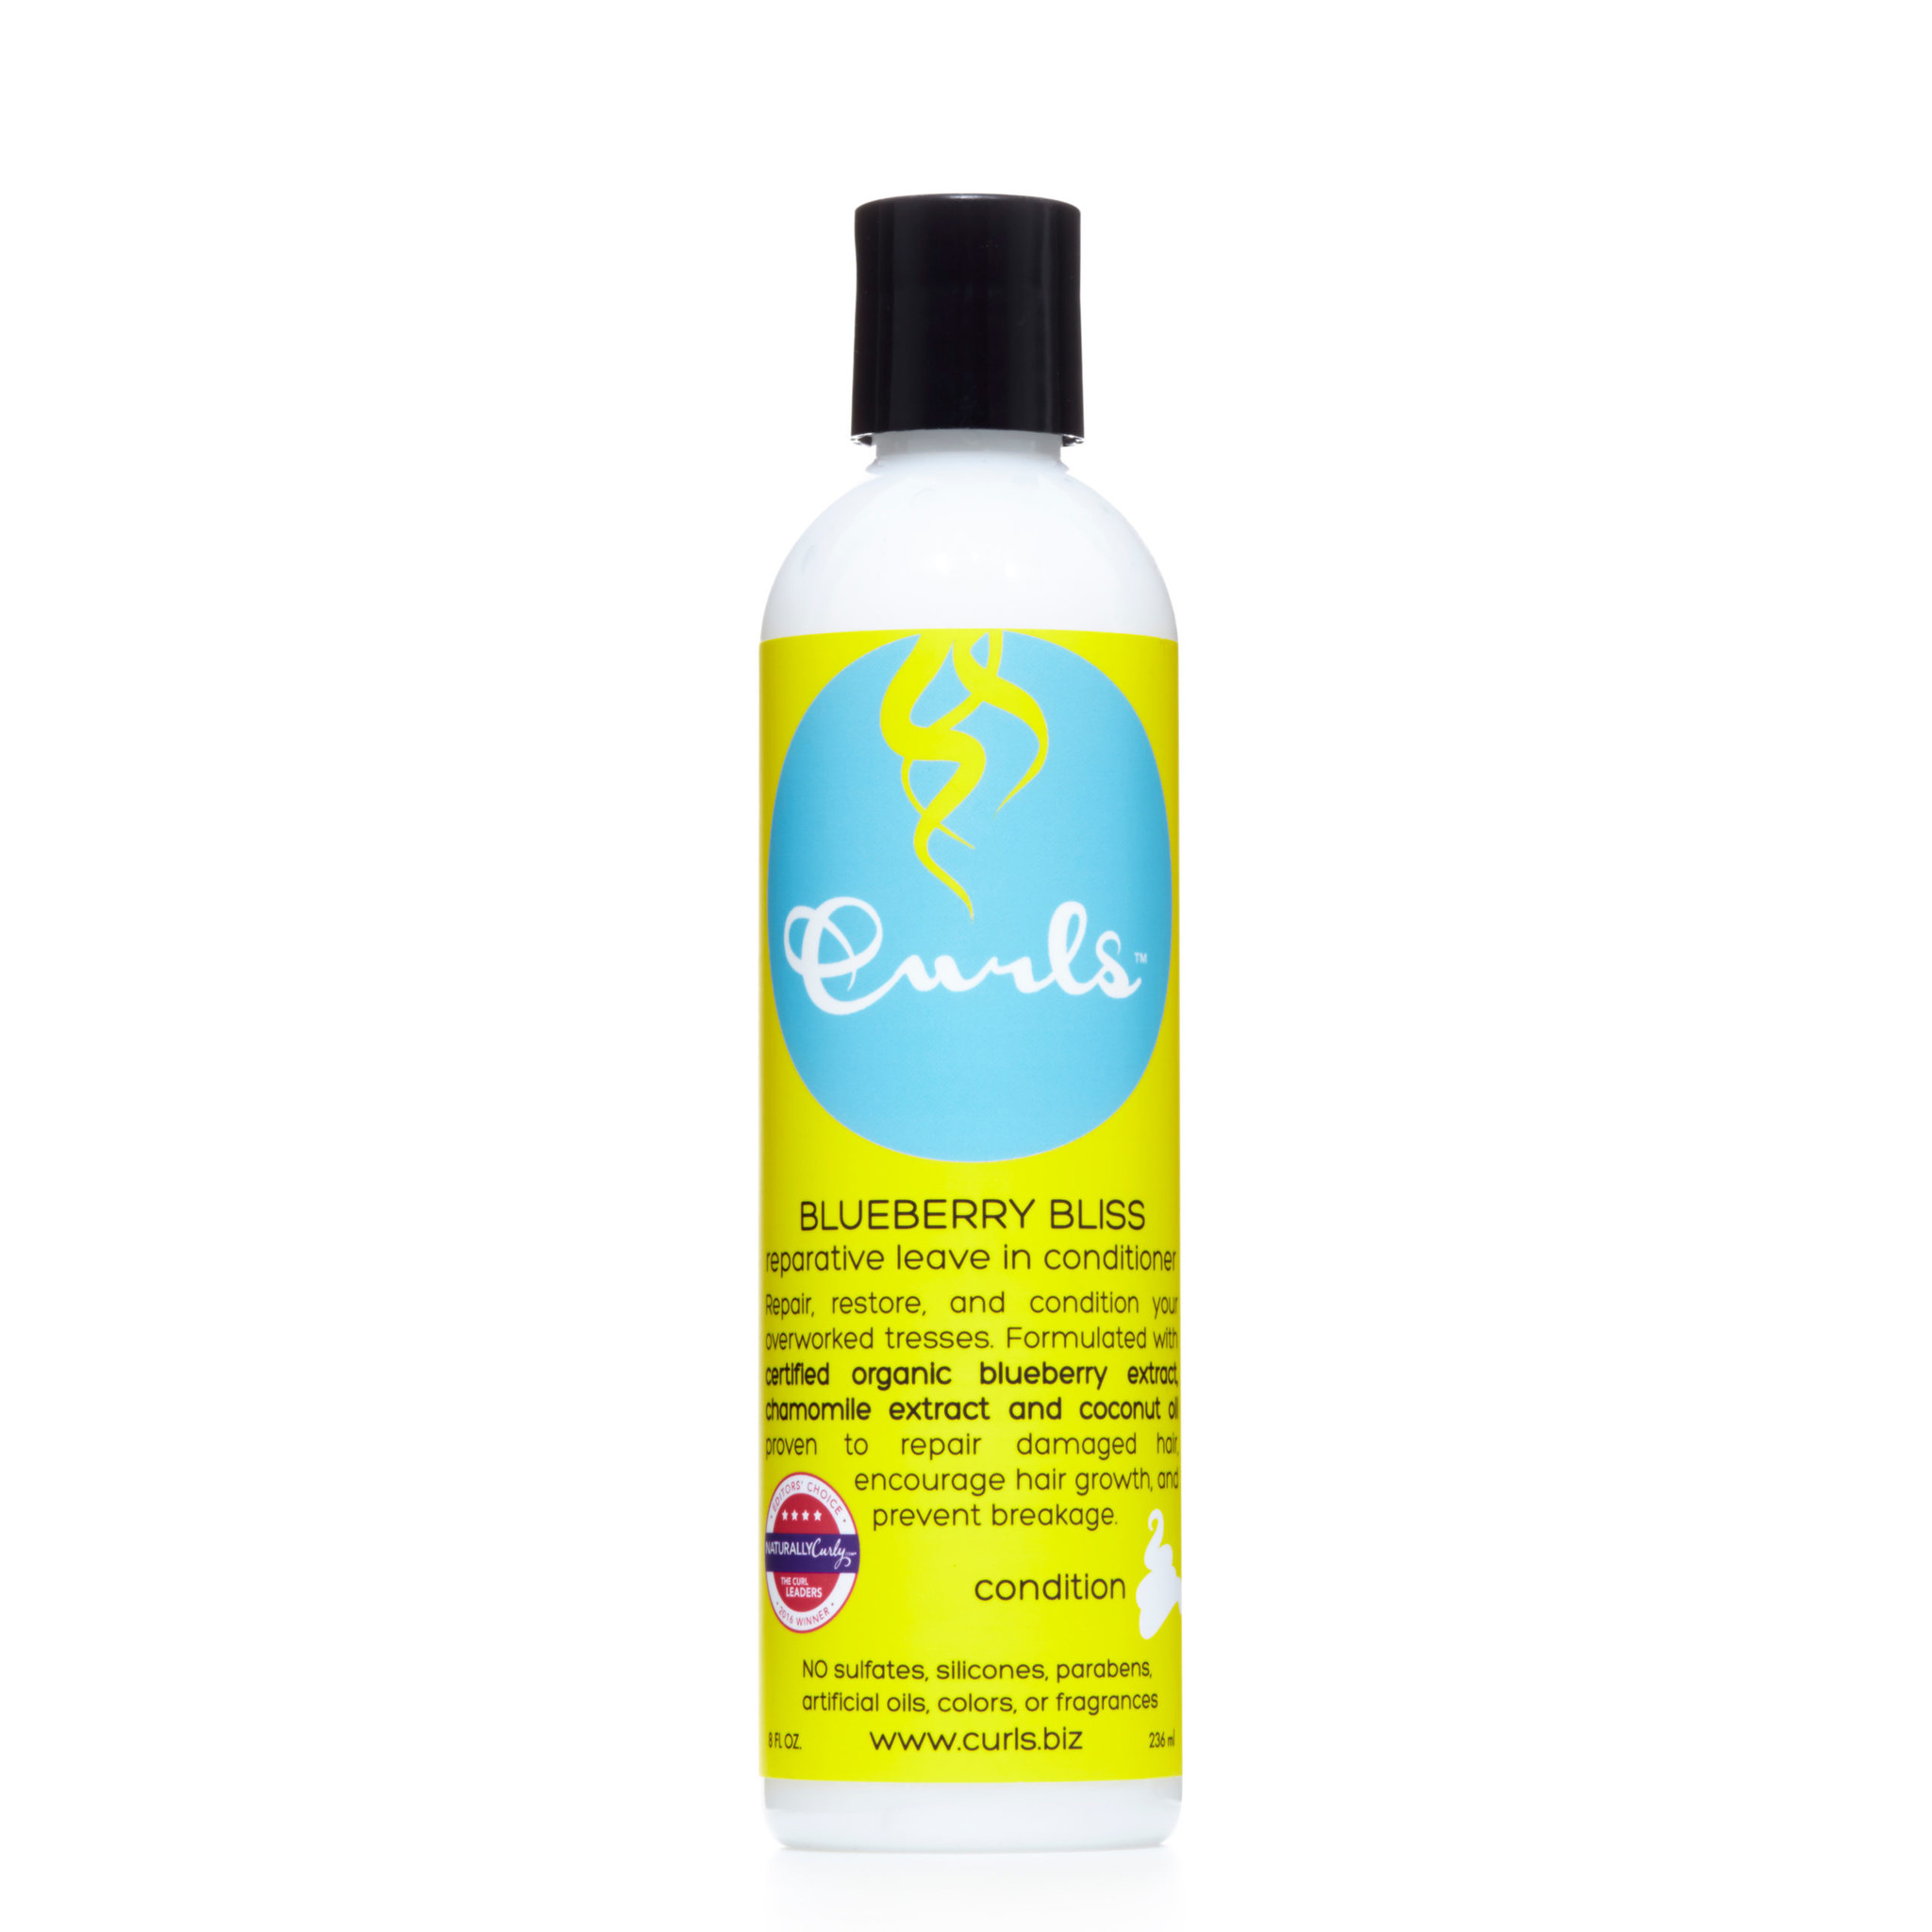 Curls Curls Blueberry Bliss Reparative Leave In Conditioner